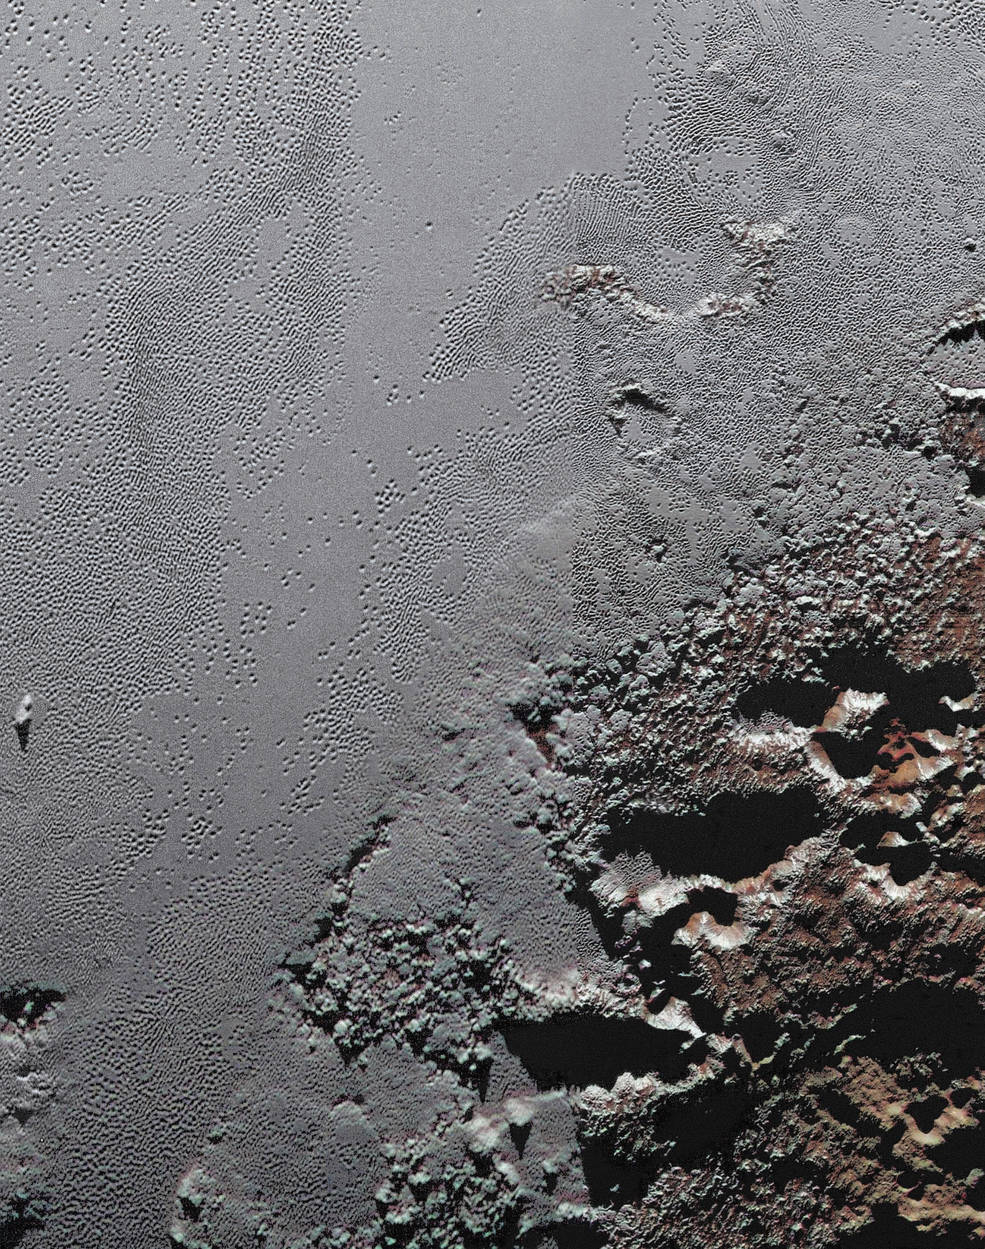 NASA's New Horizons spacecraft zooms in on the southeastern portion of Pluto's great ice plains, where at lower right the plains